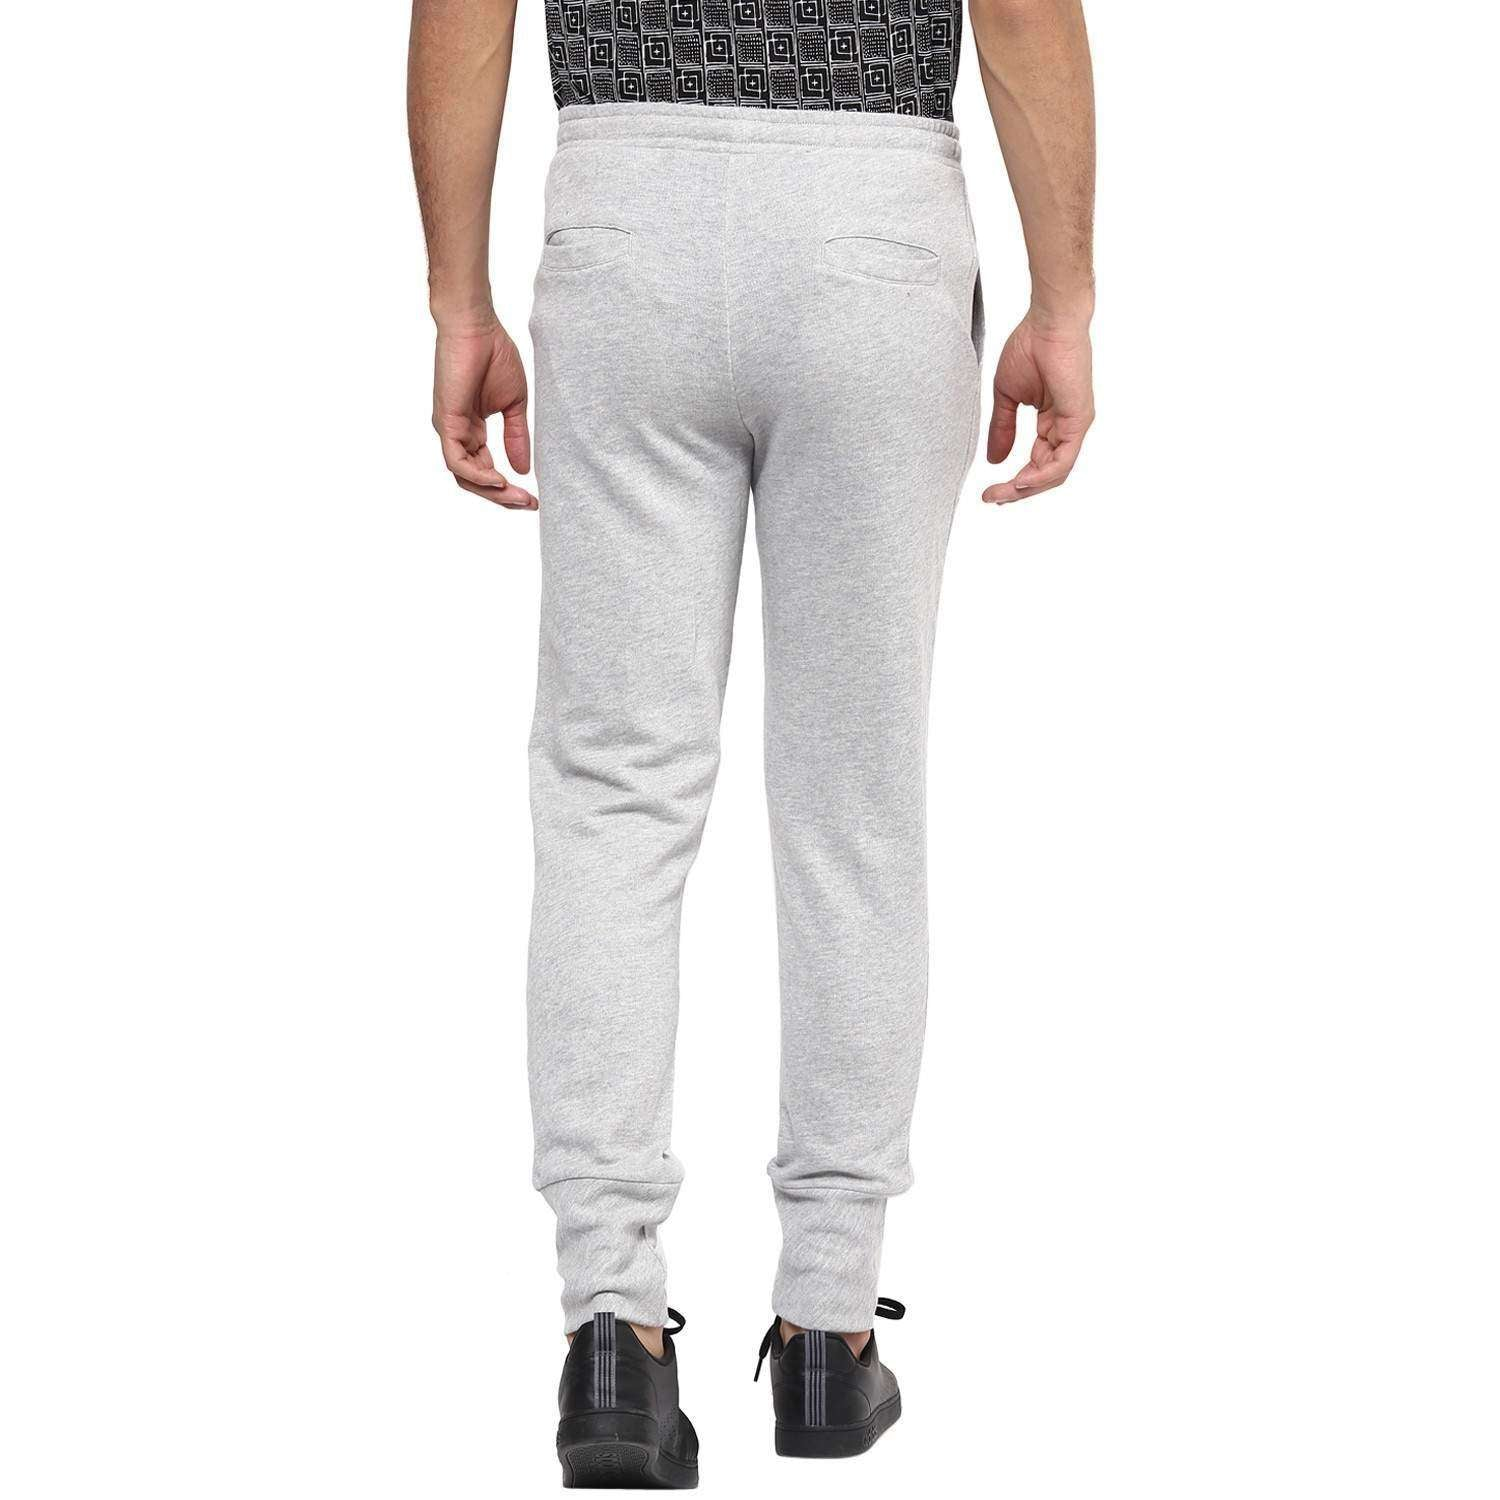 Cropped Length Jogger